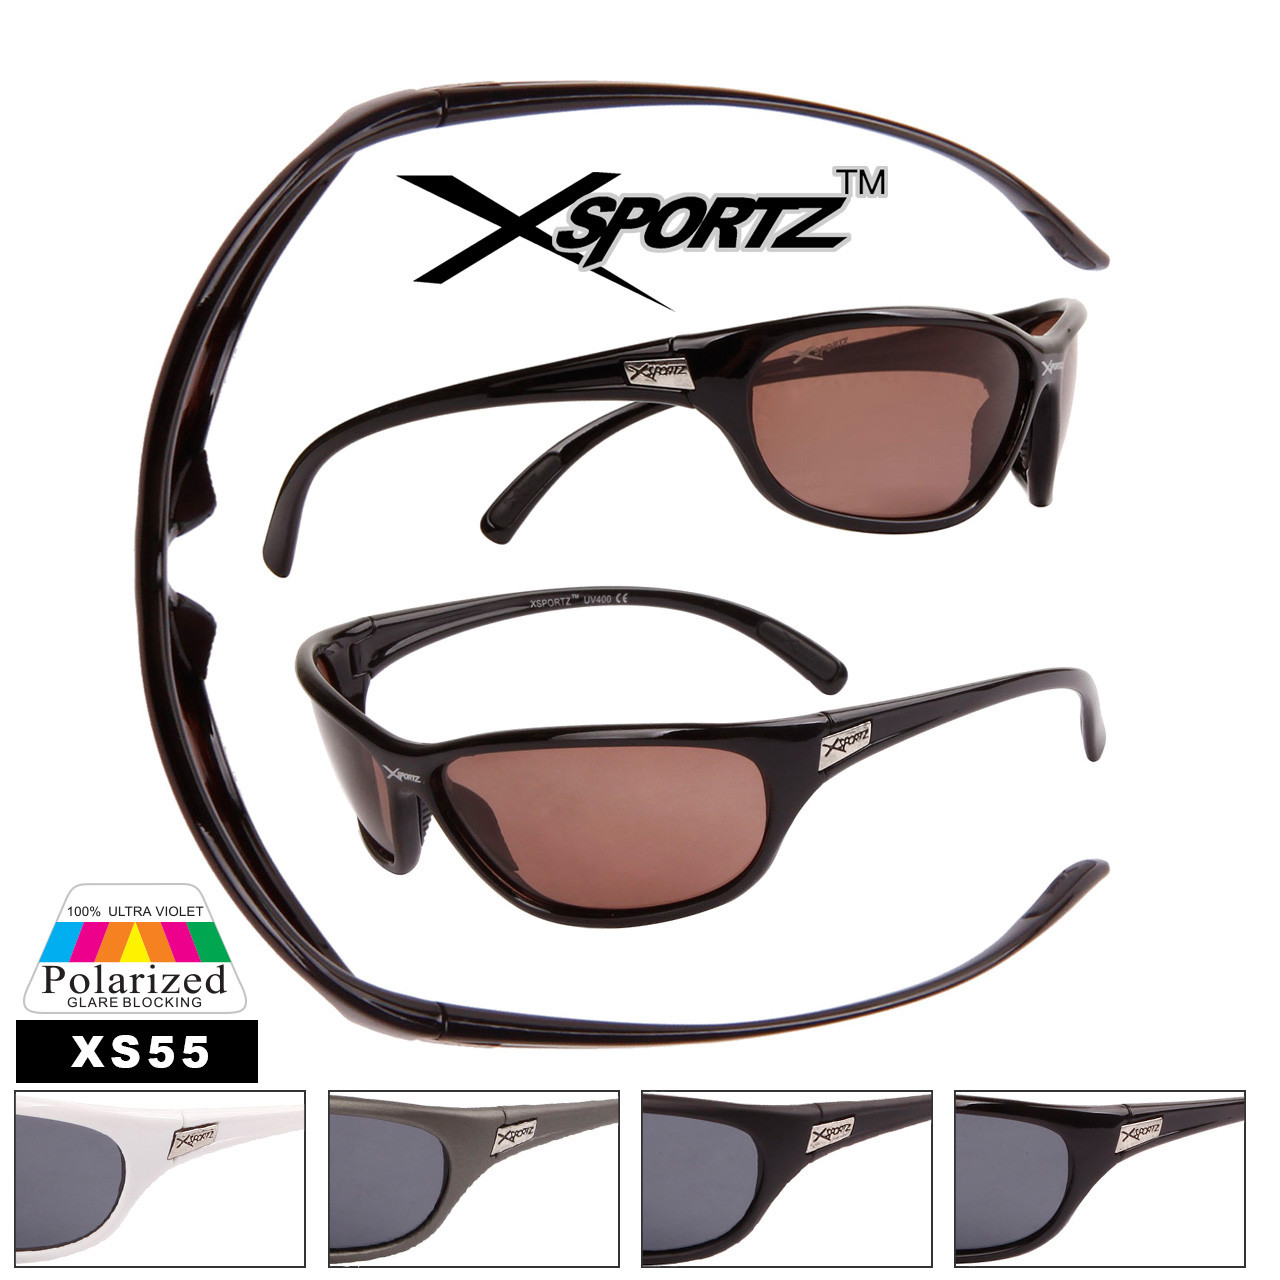 Full Wrap Around Frame Polarized Sunglasses - Style #XS55 (Assorted Colors) (12 pcs.)